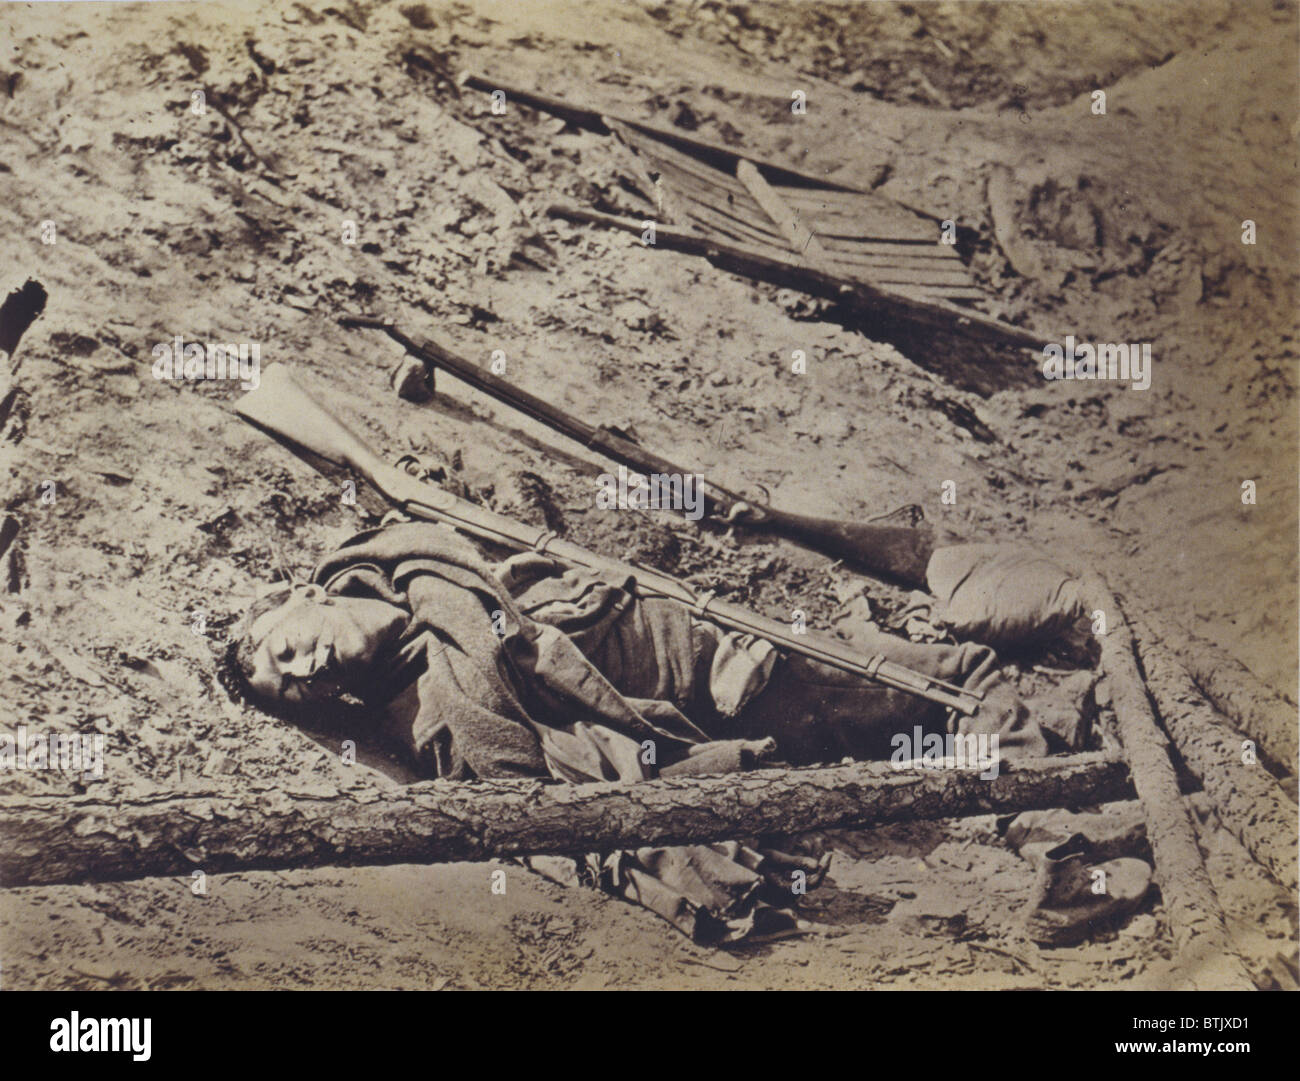 The Civil War, dead Confederate soldier lying in a trench, Petersburg, Virginia, April 3, 1865. - Stock Image